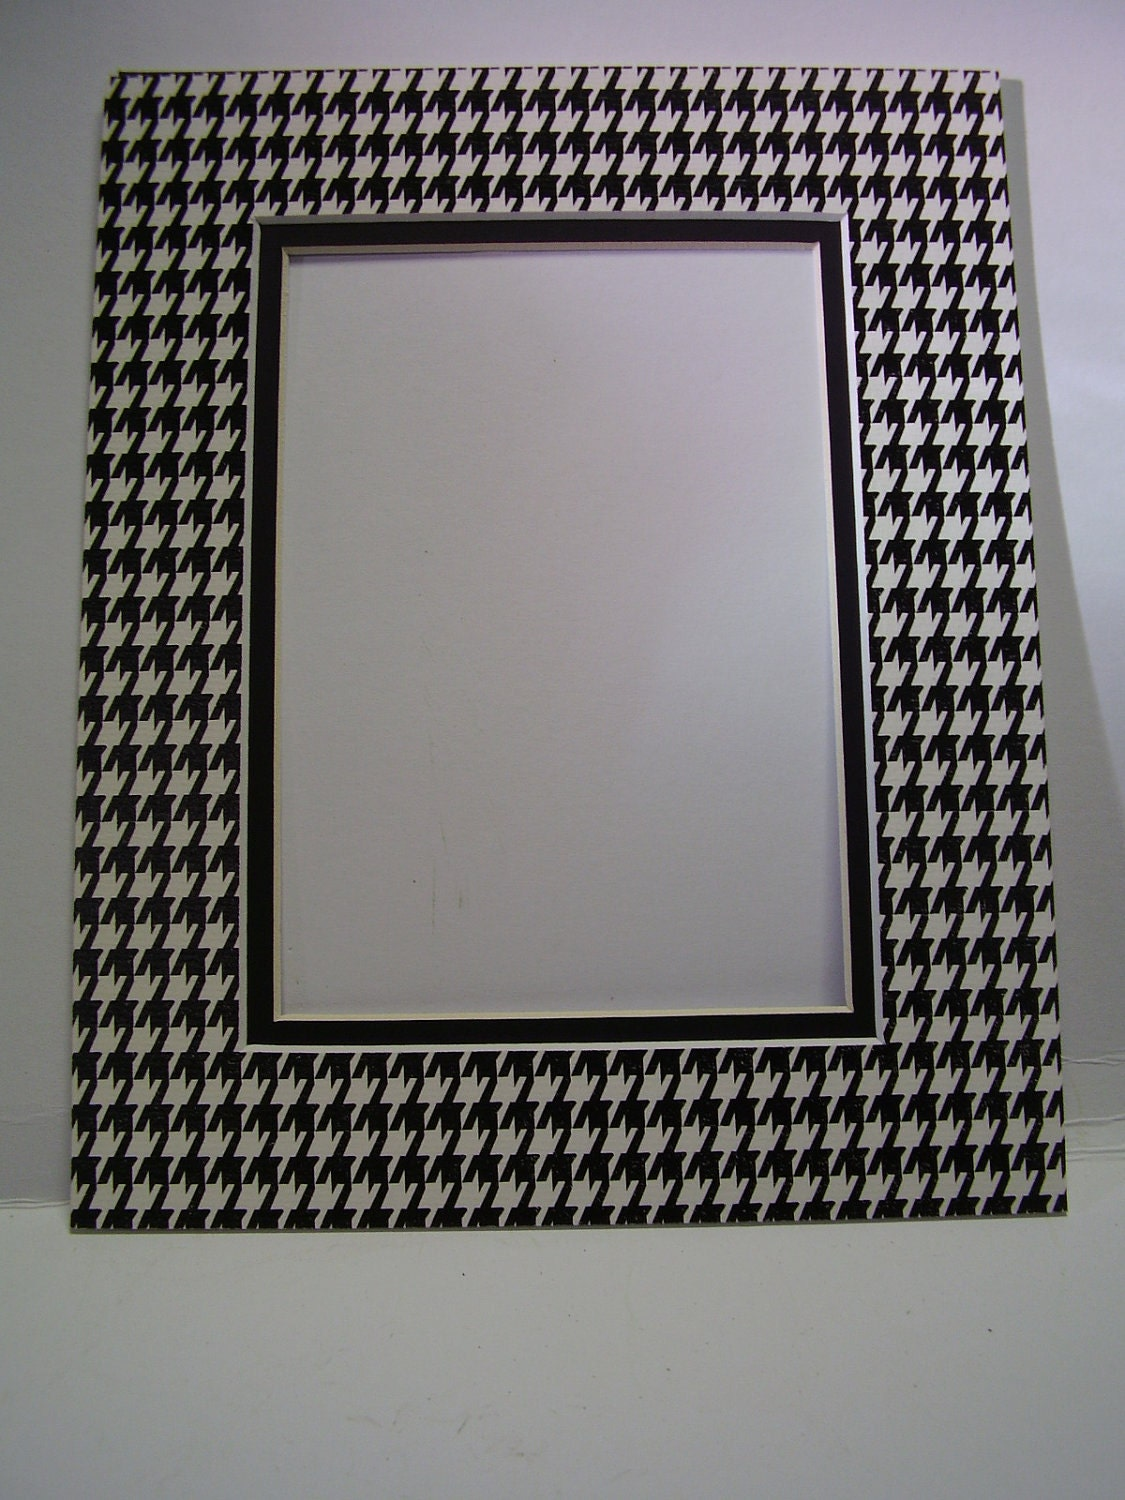 Picture Frame Mat Houndstooth Check Black And White 11x14